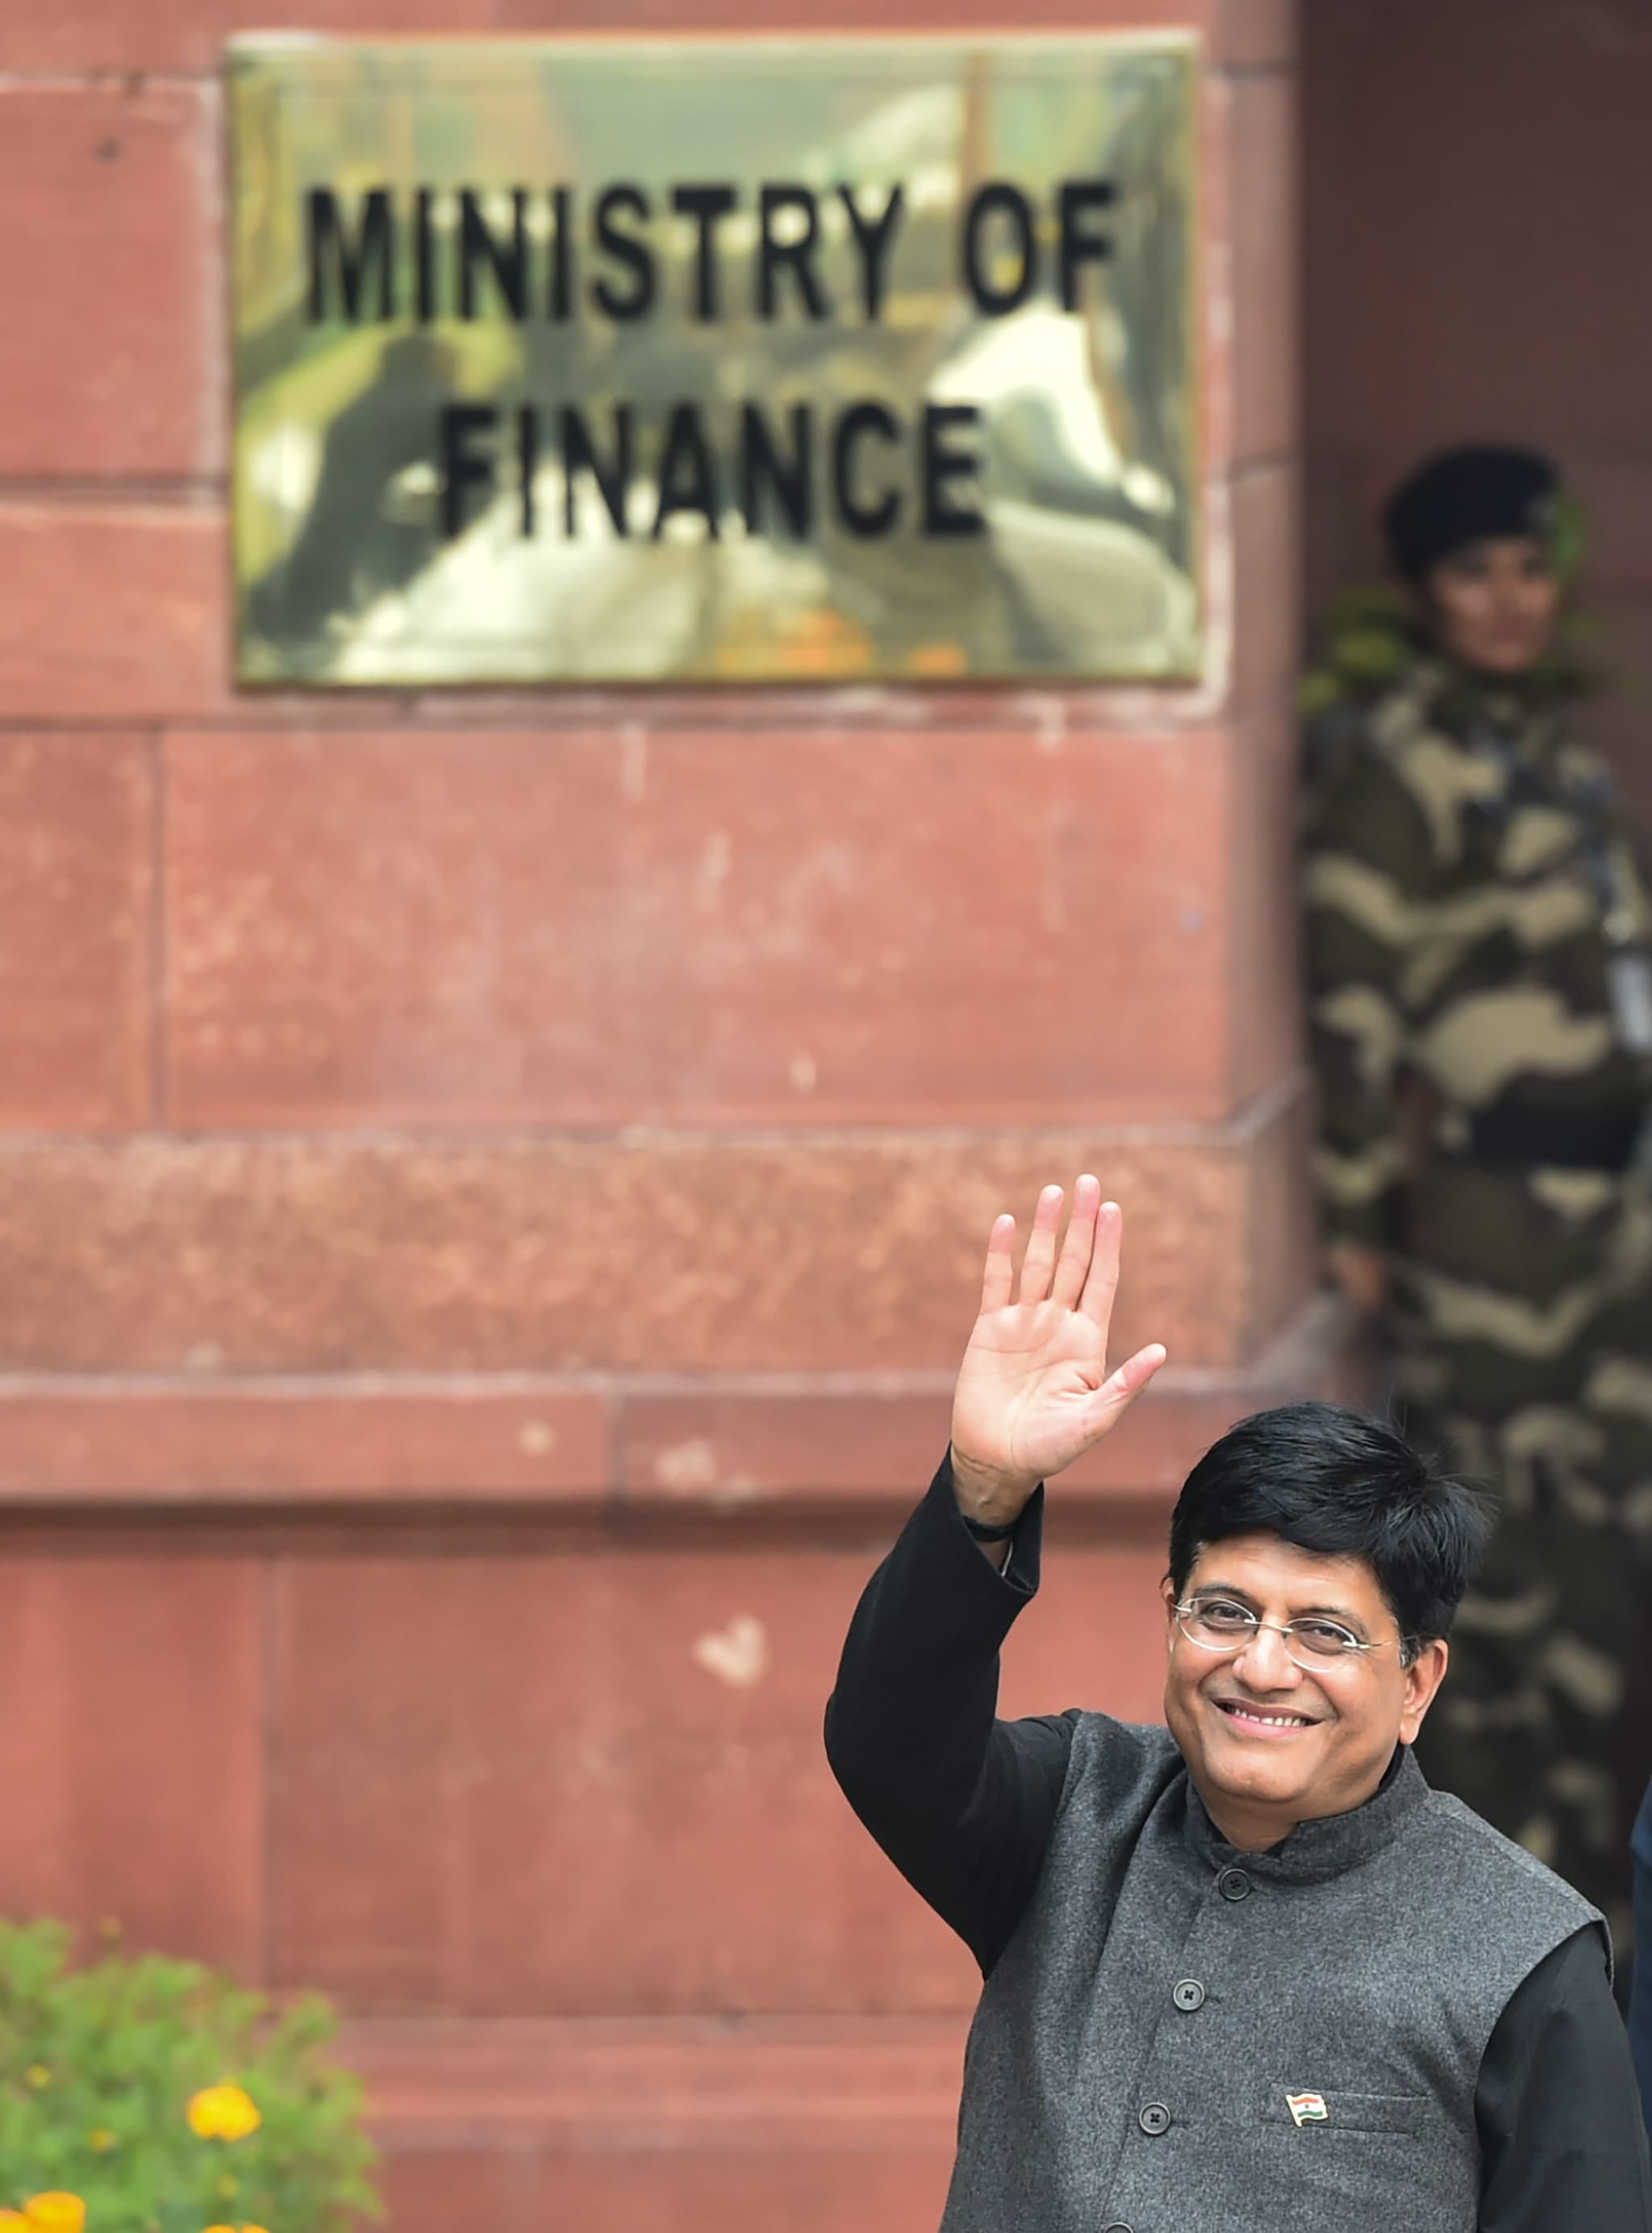 Union finance minister Piyush Goyal arrives at North Block to present the Union Budget at the Parliament, in New Delhi, Friday, February 1, 2019. (PTI Photo/ Arun Sharma)